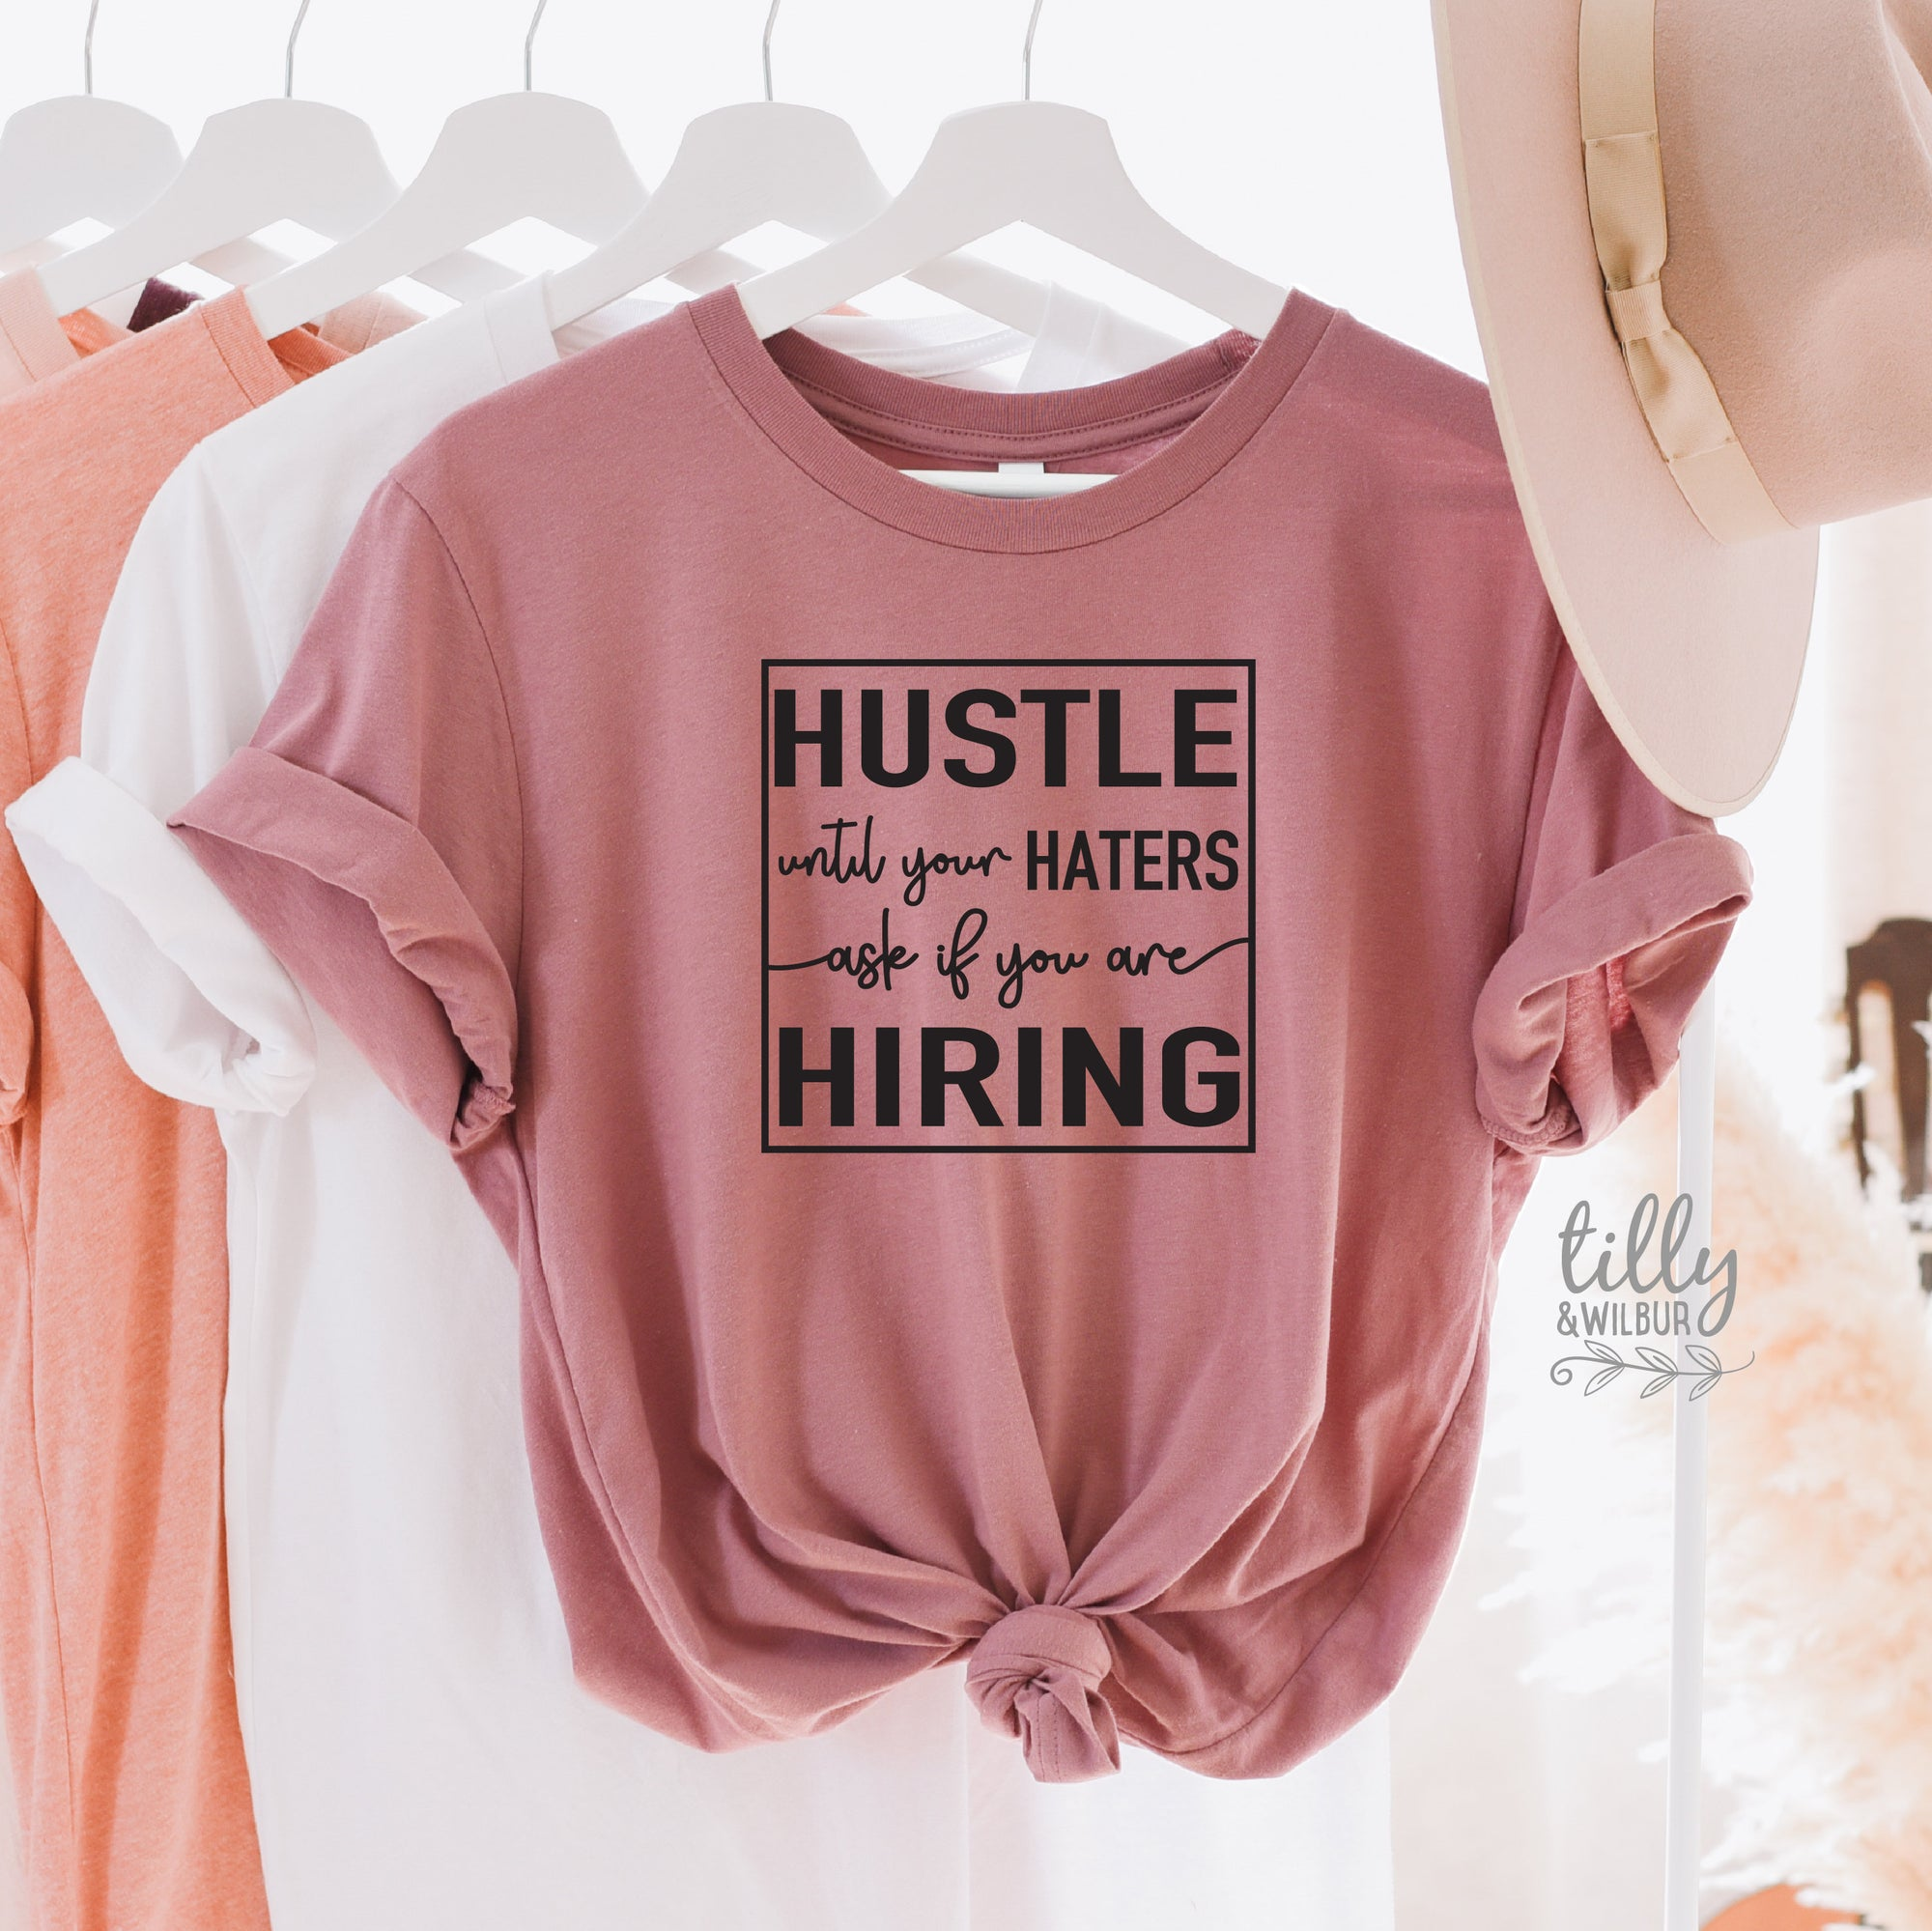 Funny Women's T-Shirt, Hustle Until Your Haters Ask If You Are Hiring T-Shirt, Strong Women T-Shirt, Girl Boss T-Shirt, Haters T-Shirt, Gift